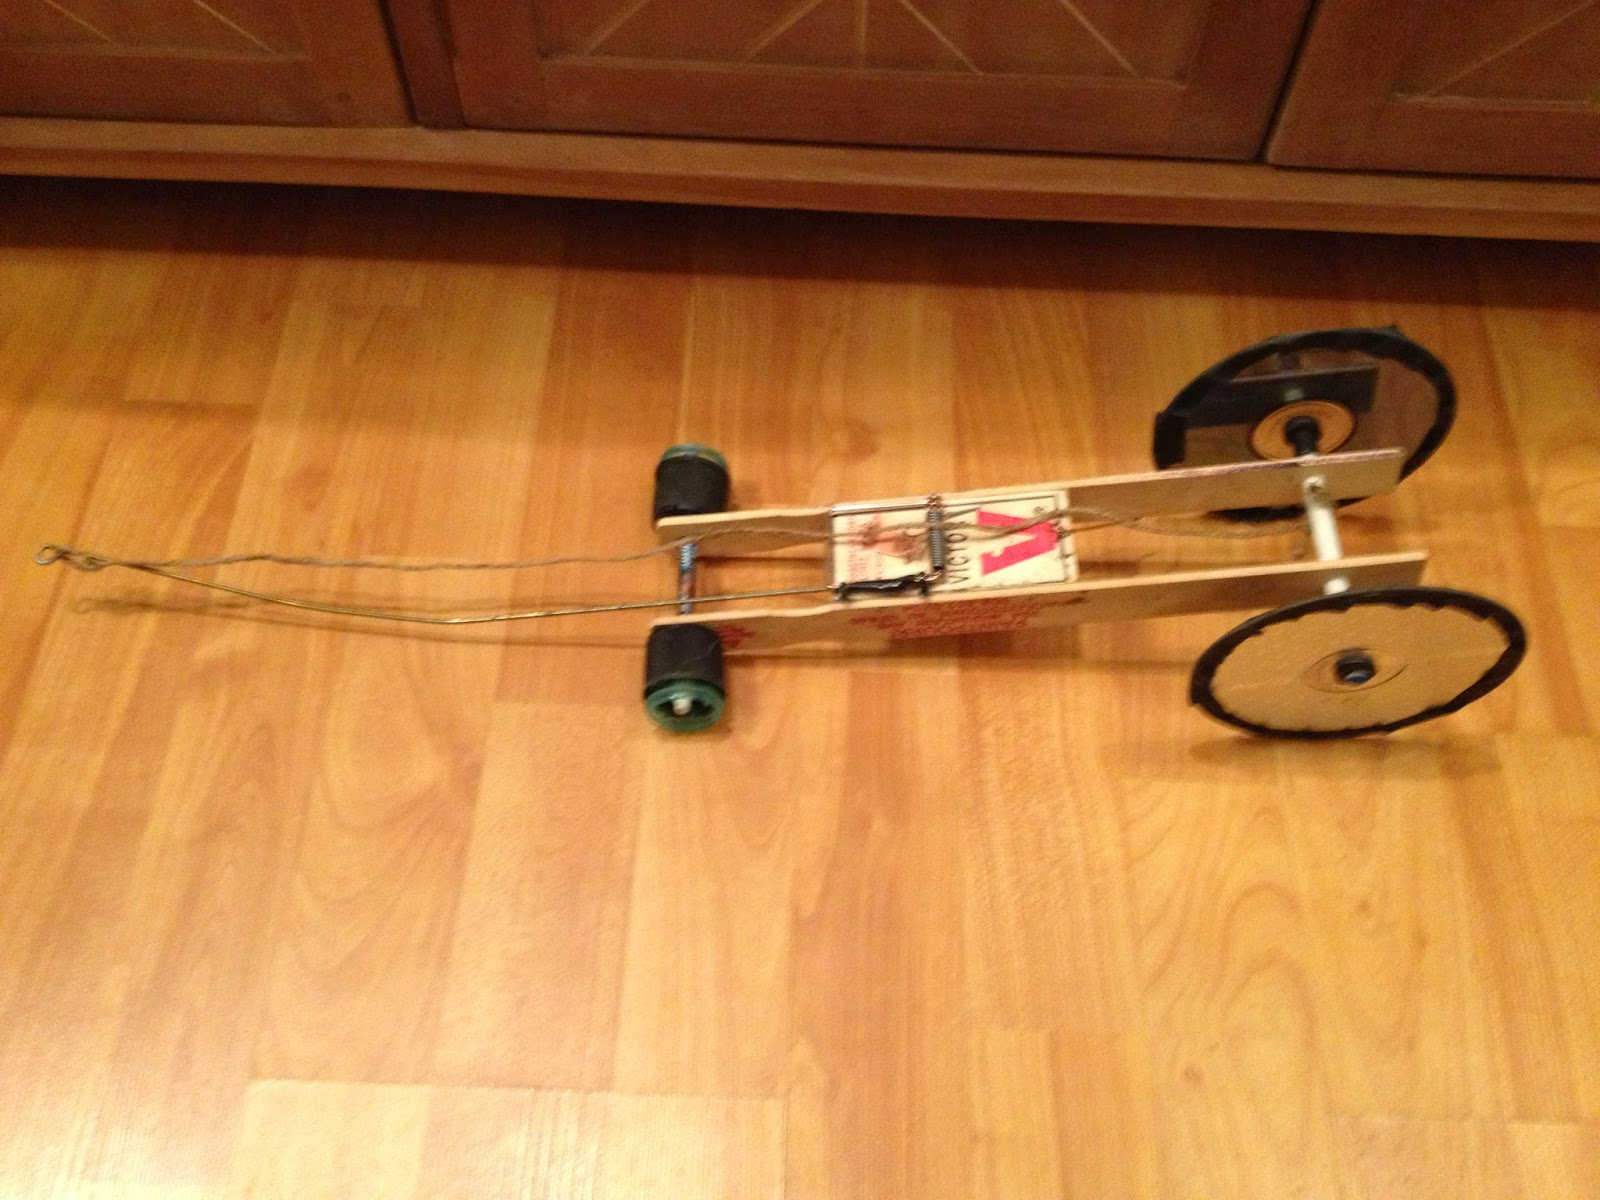 helena s physics blog 2015 i know how the wheel and axle work so this is the type of model i came up as the final product of the car